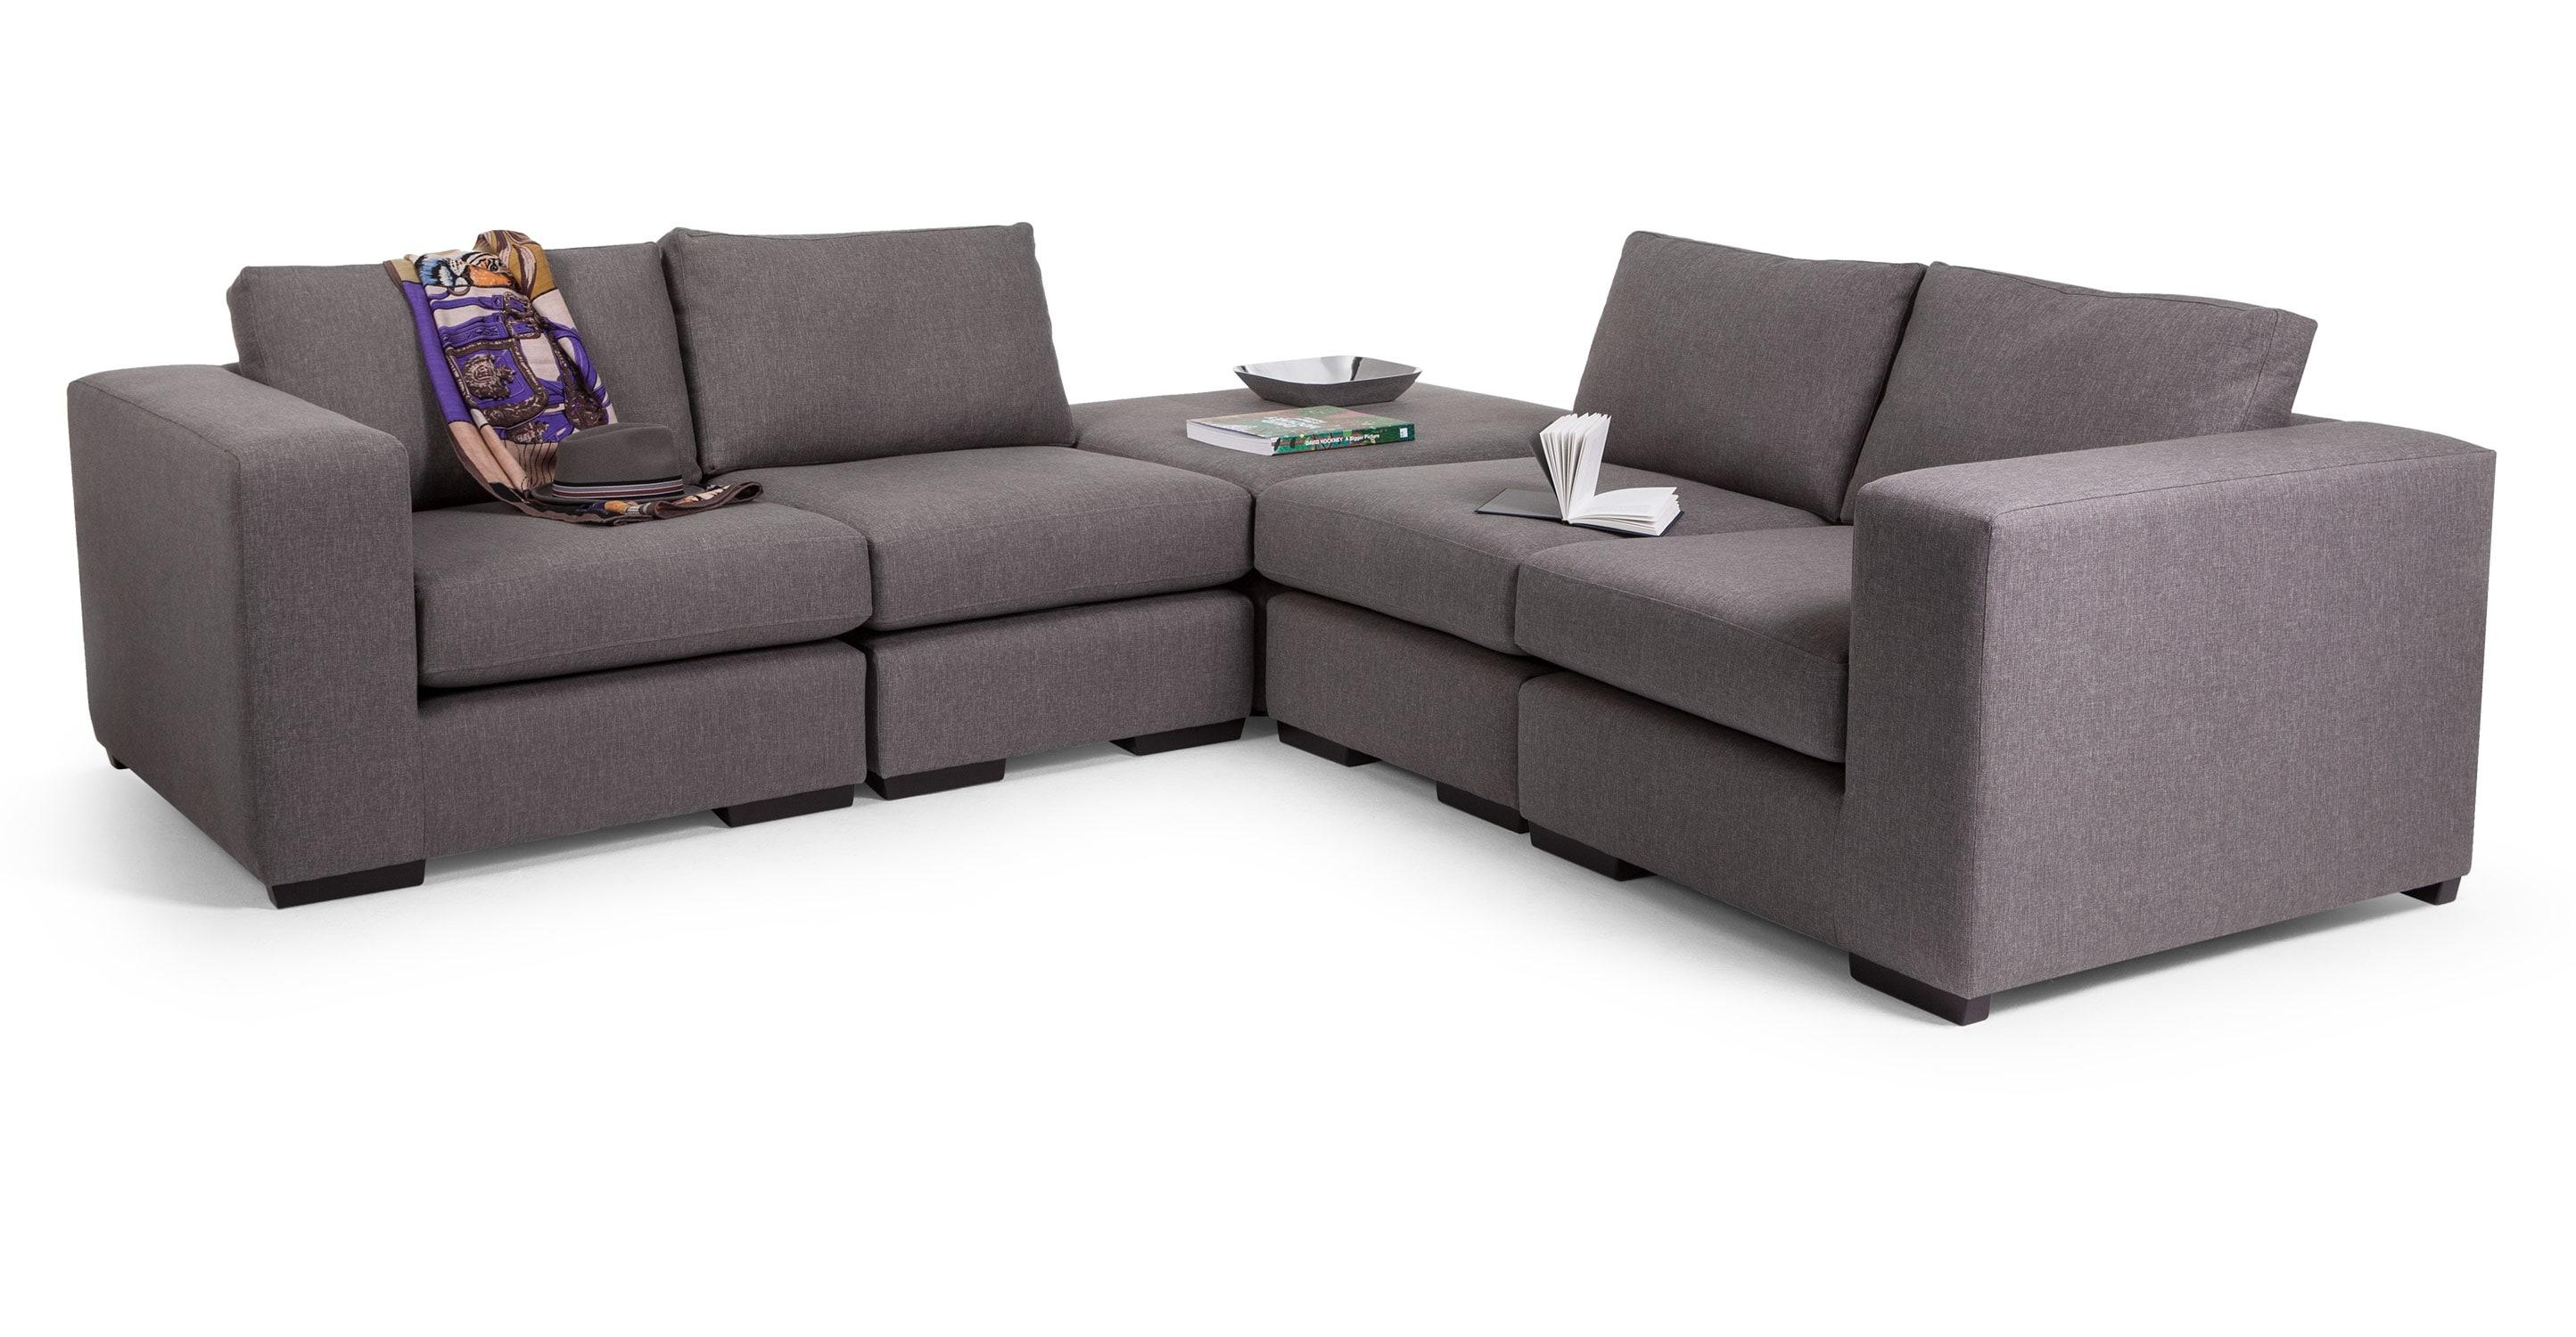 Modular Corner Sofas – Thesofa Throughout Modular Corner Sofas (View 2 of 20)